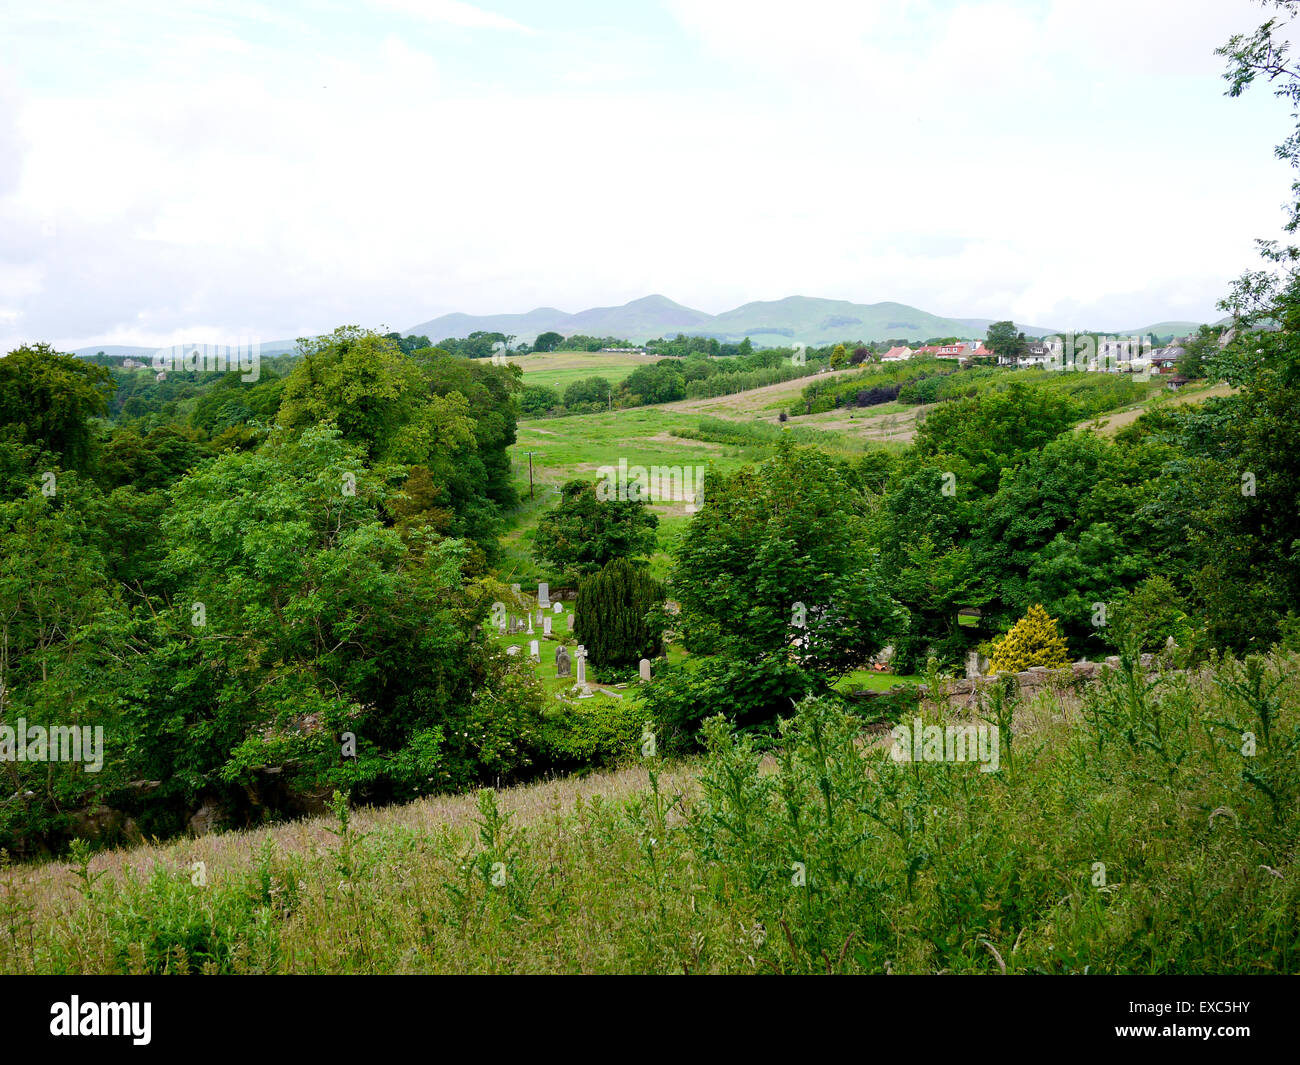 A view towards the Pentland Hills from Rosslyn Chapel, Roslin, Midlothian, Scotland, UK. - Stock Image